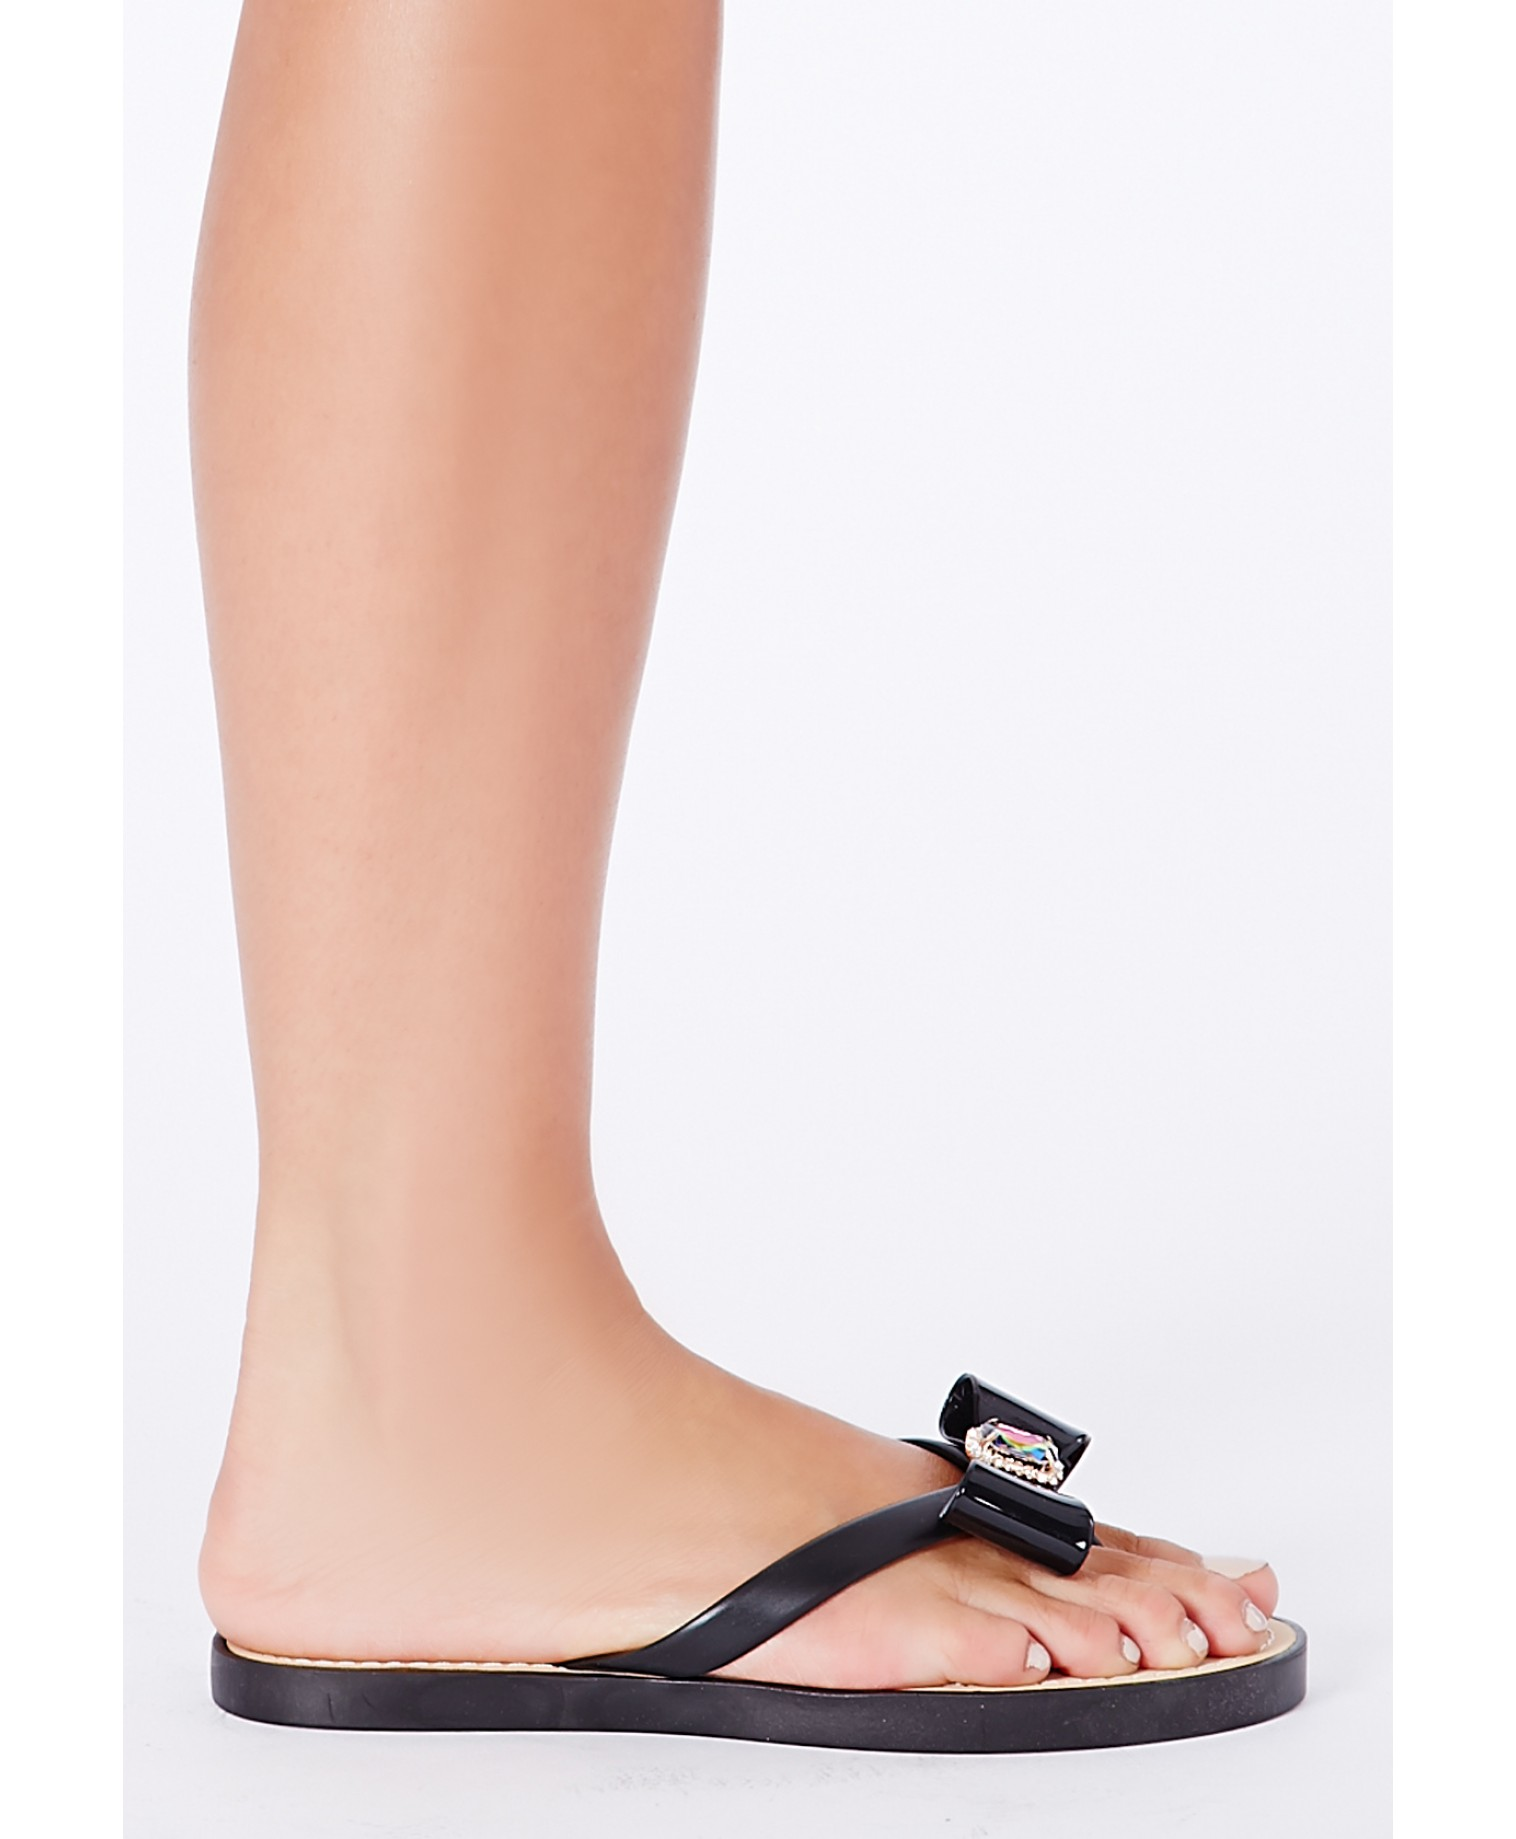 Natsuko flipflops with bow and gem detailing in black 2